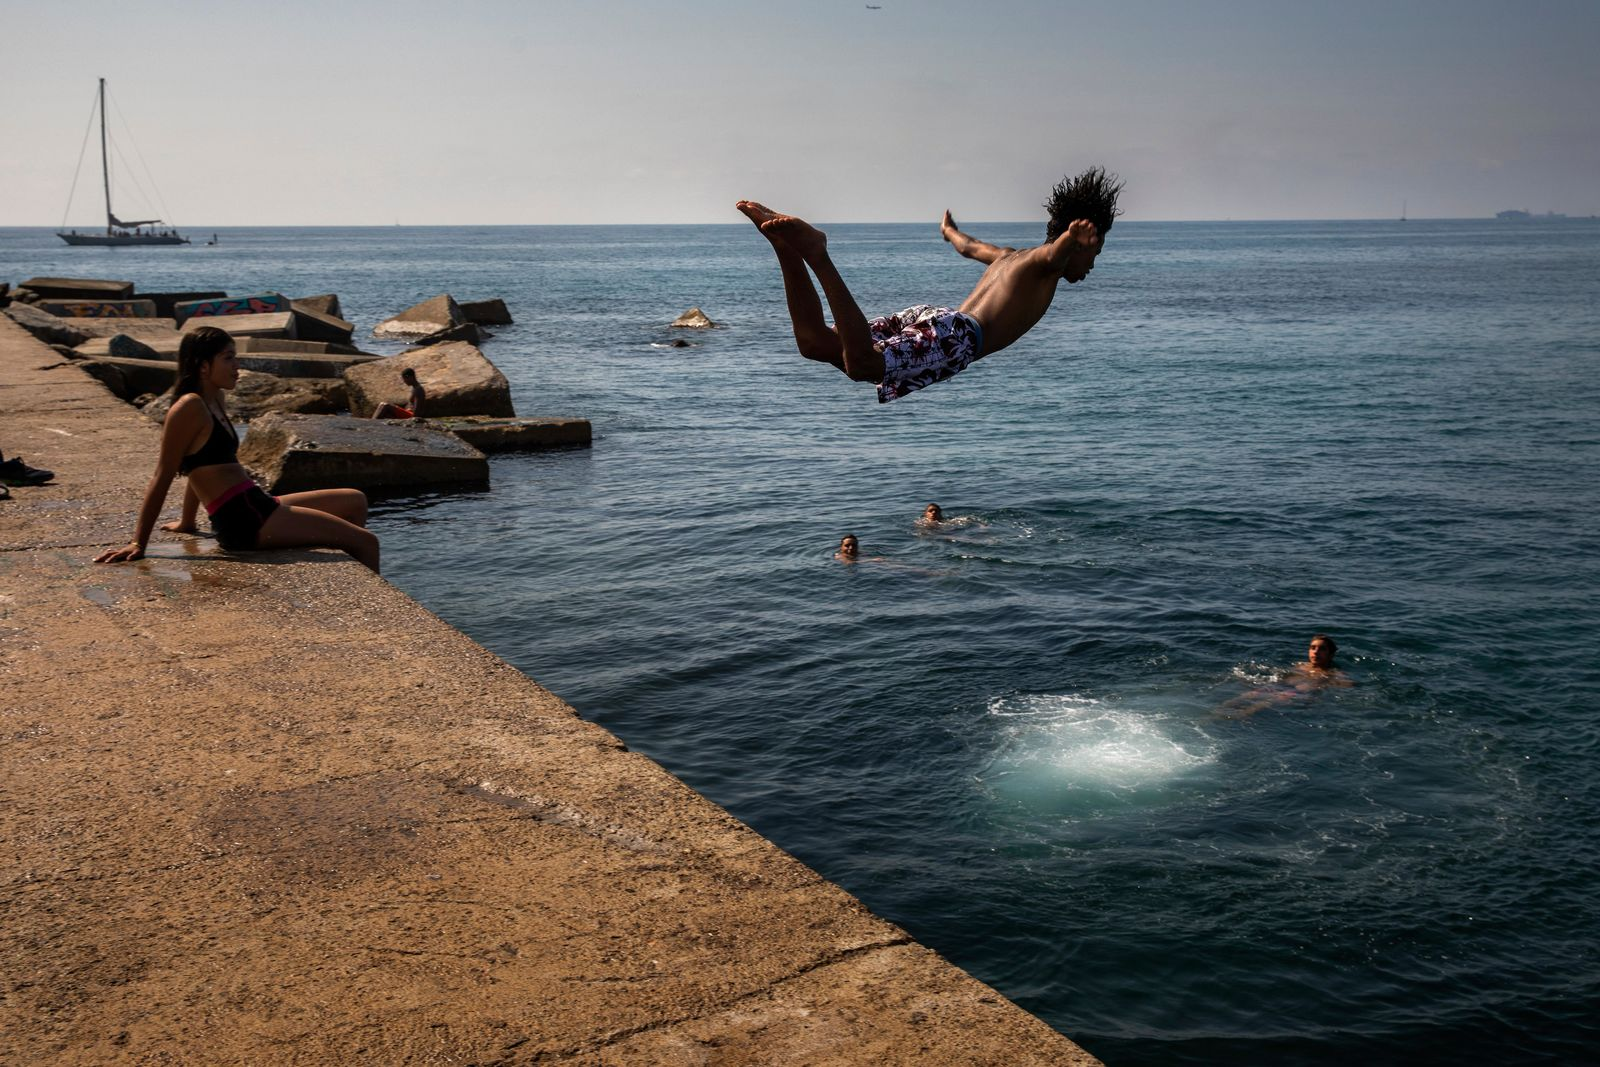 FILE - In this file photo dated Thursday, July 25, 2019, a boy jumps into the water at the beach in Barcelona, Spain. (AP Photo/Emilio Morenatti, FILE)